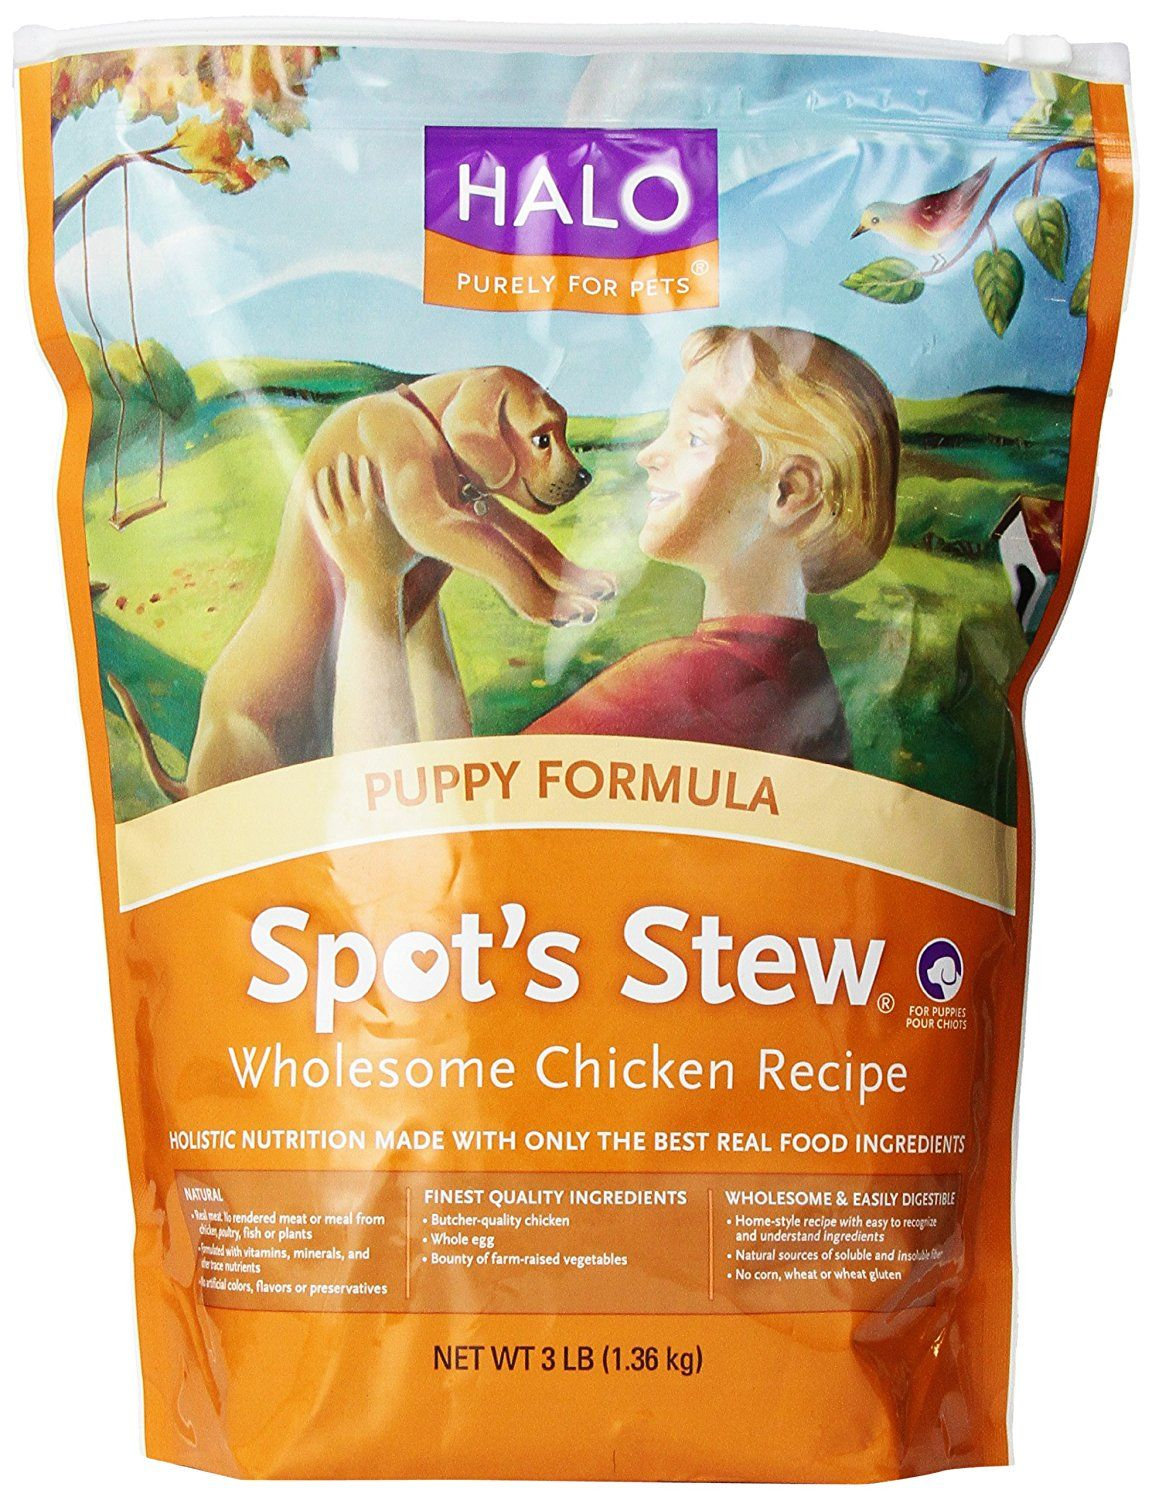 Spot S Stew Puppy Formula Check This Awesome Image Dog Food